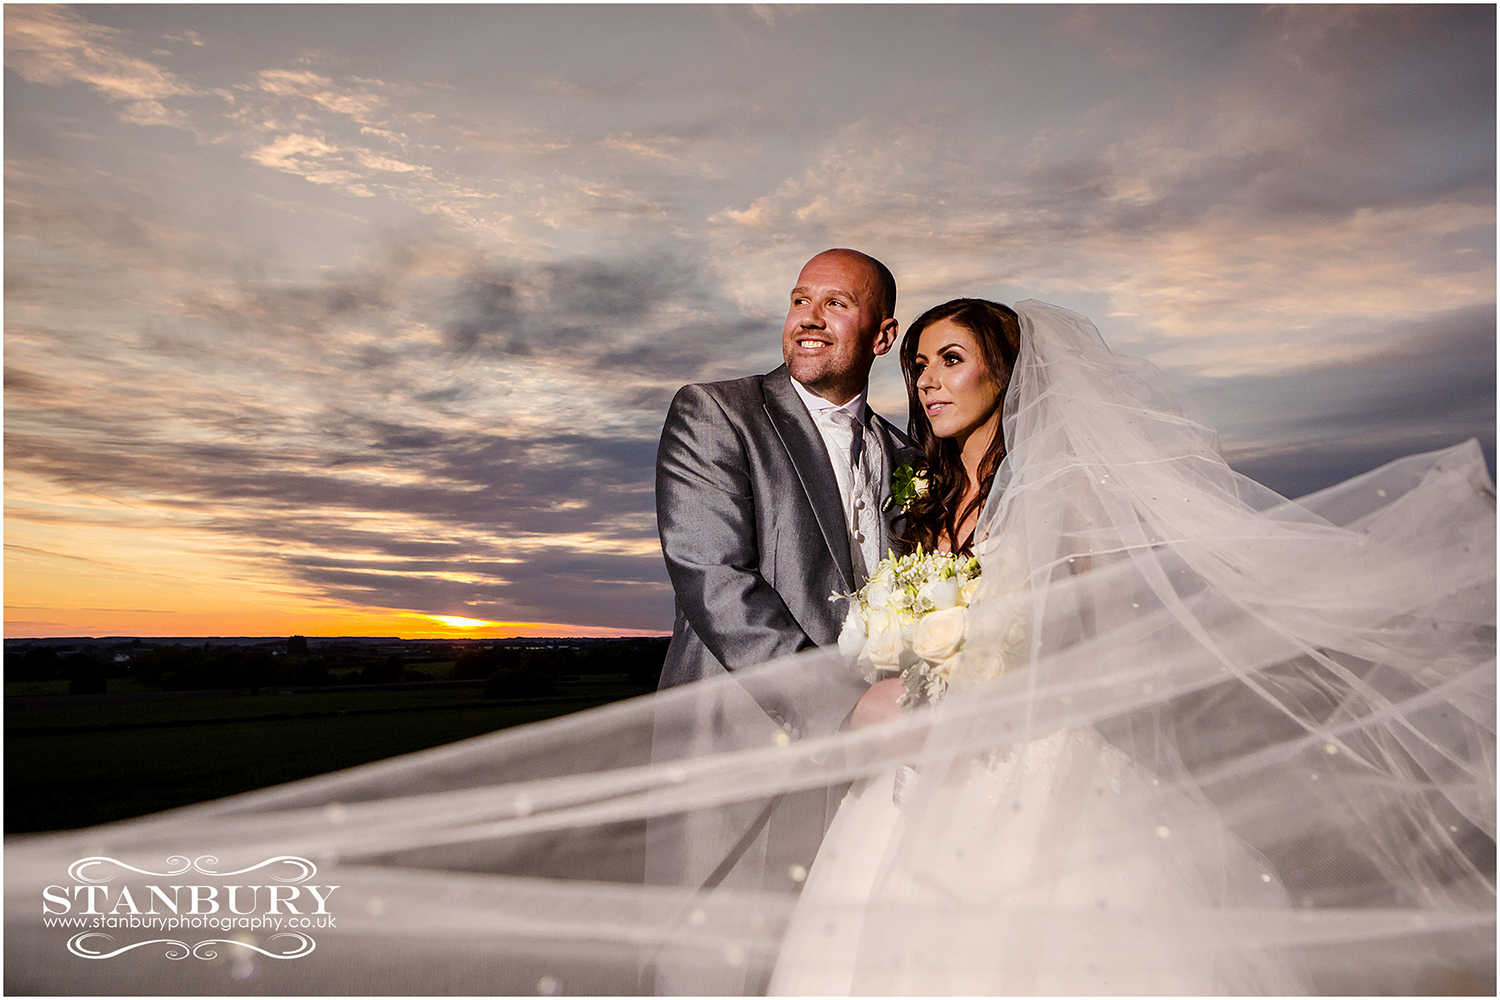 west tower wedding photographers liverpool stanbury photography